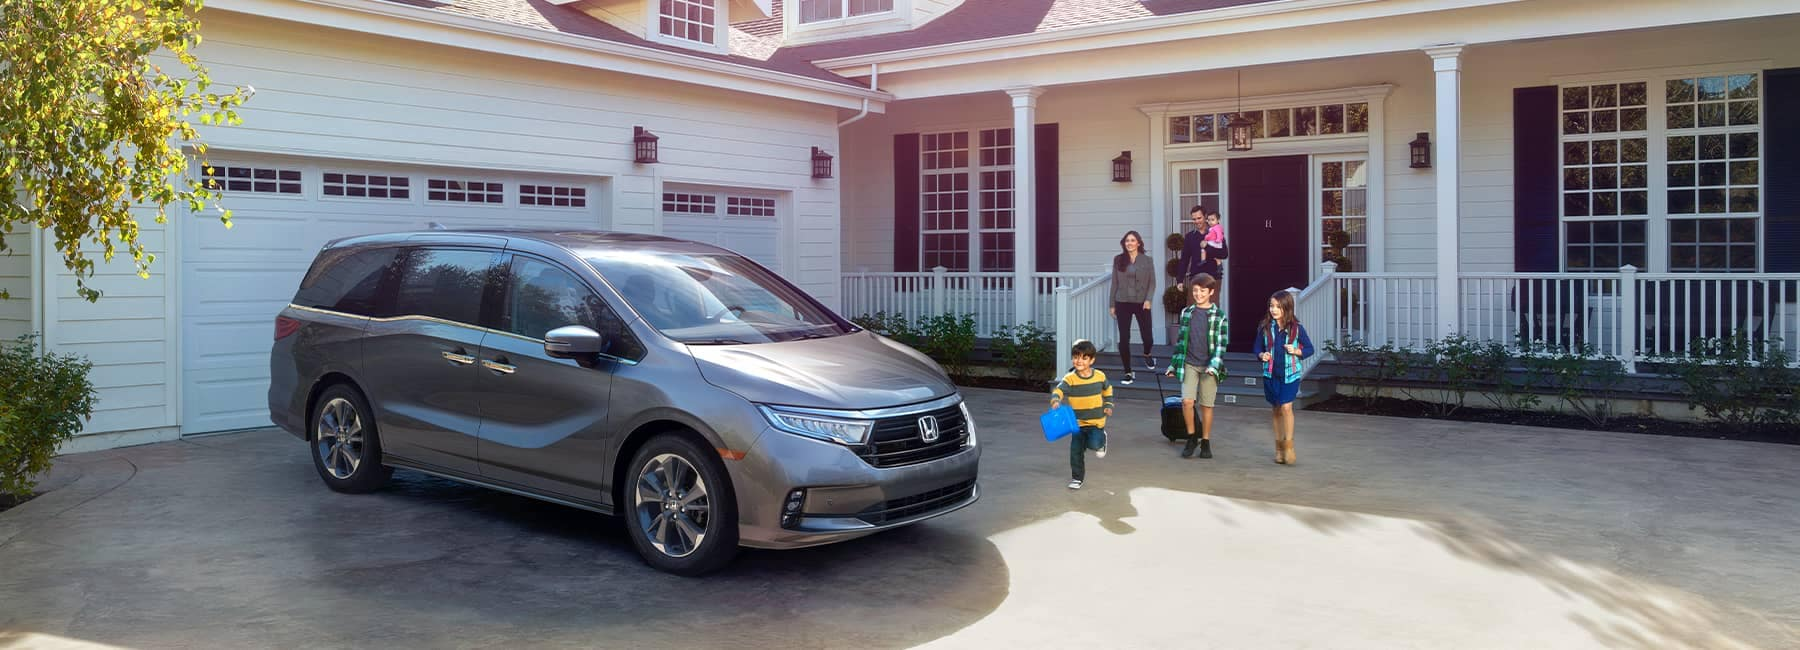 2021 Silver Honda Odyssey parked in front of a white home with black